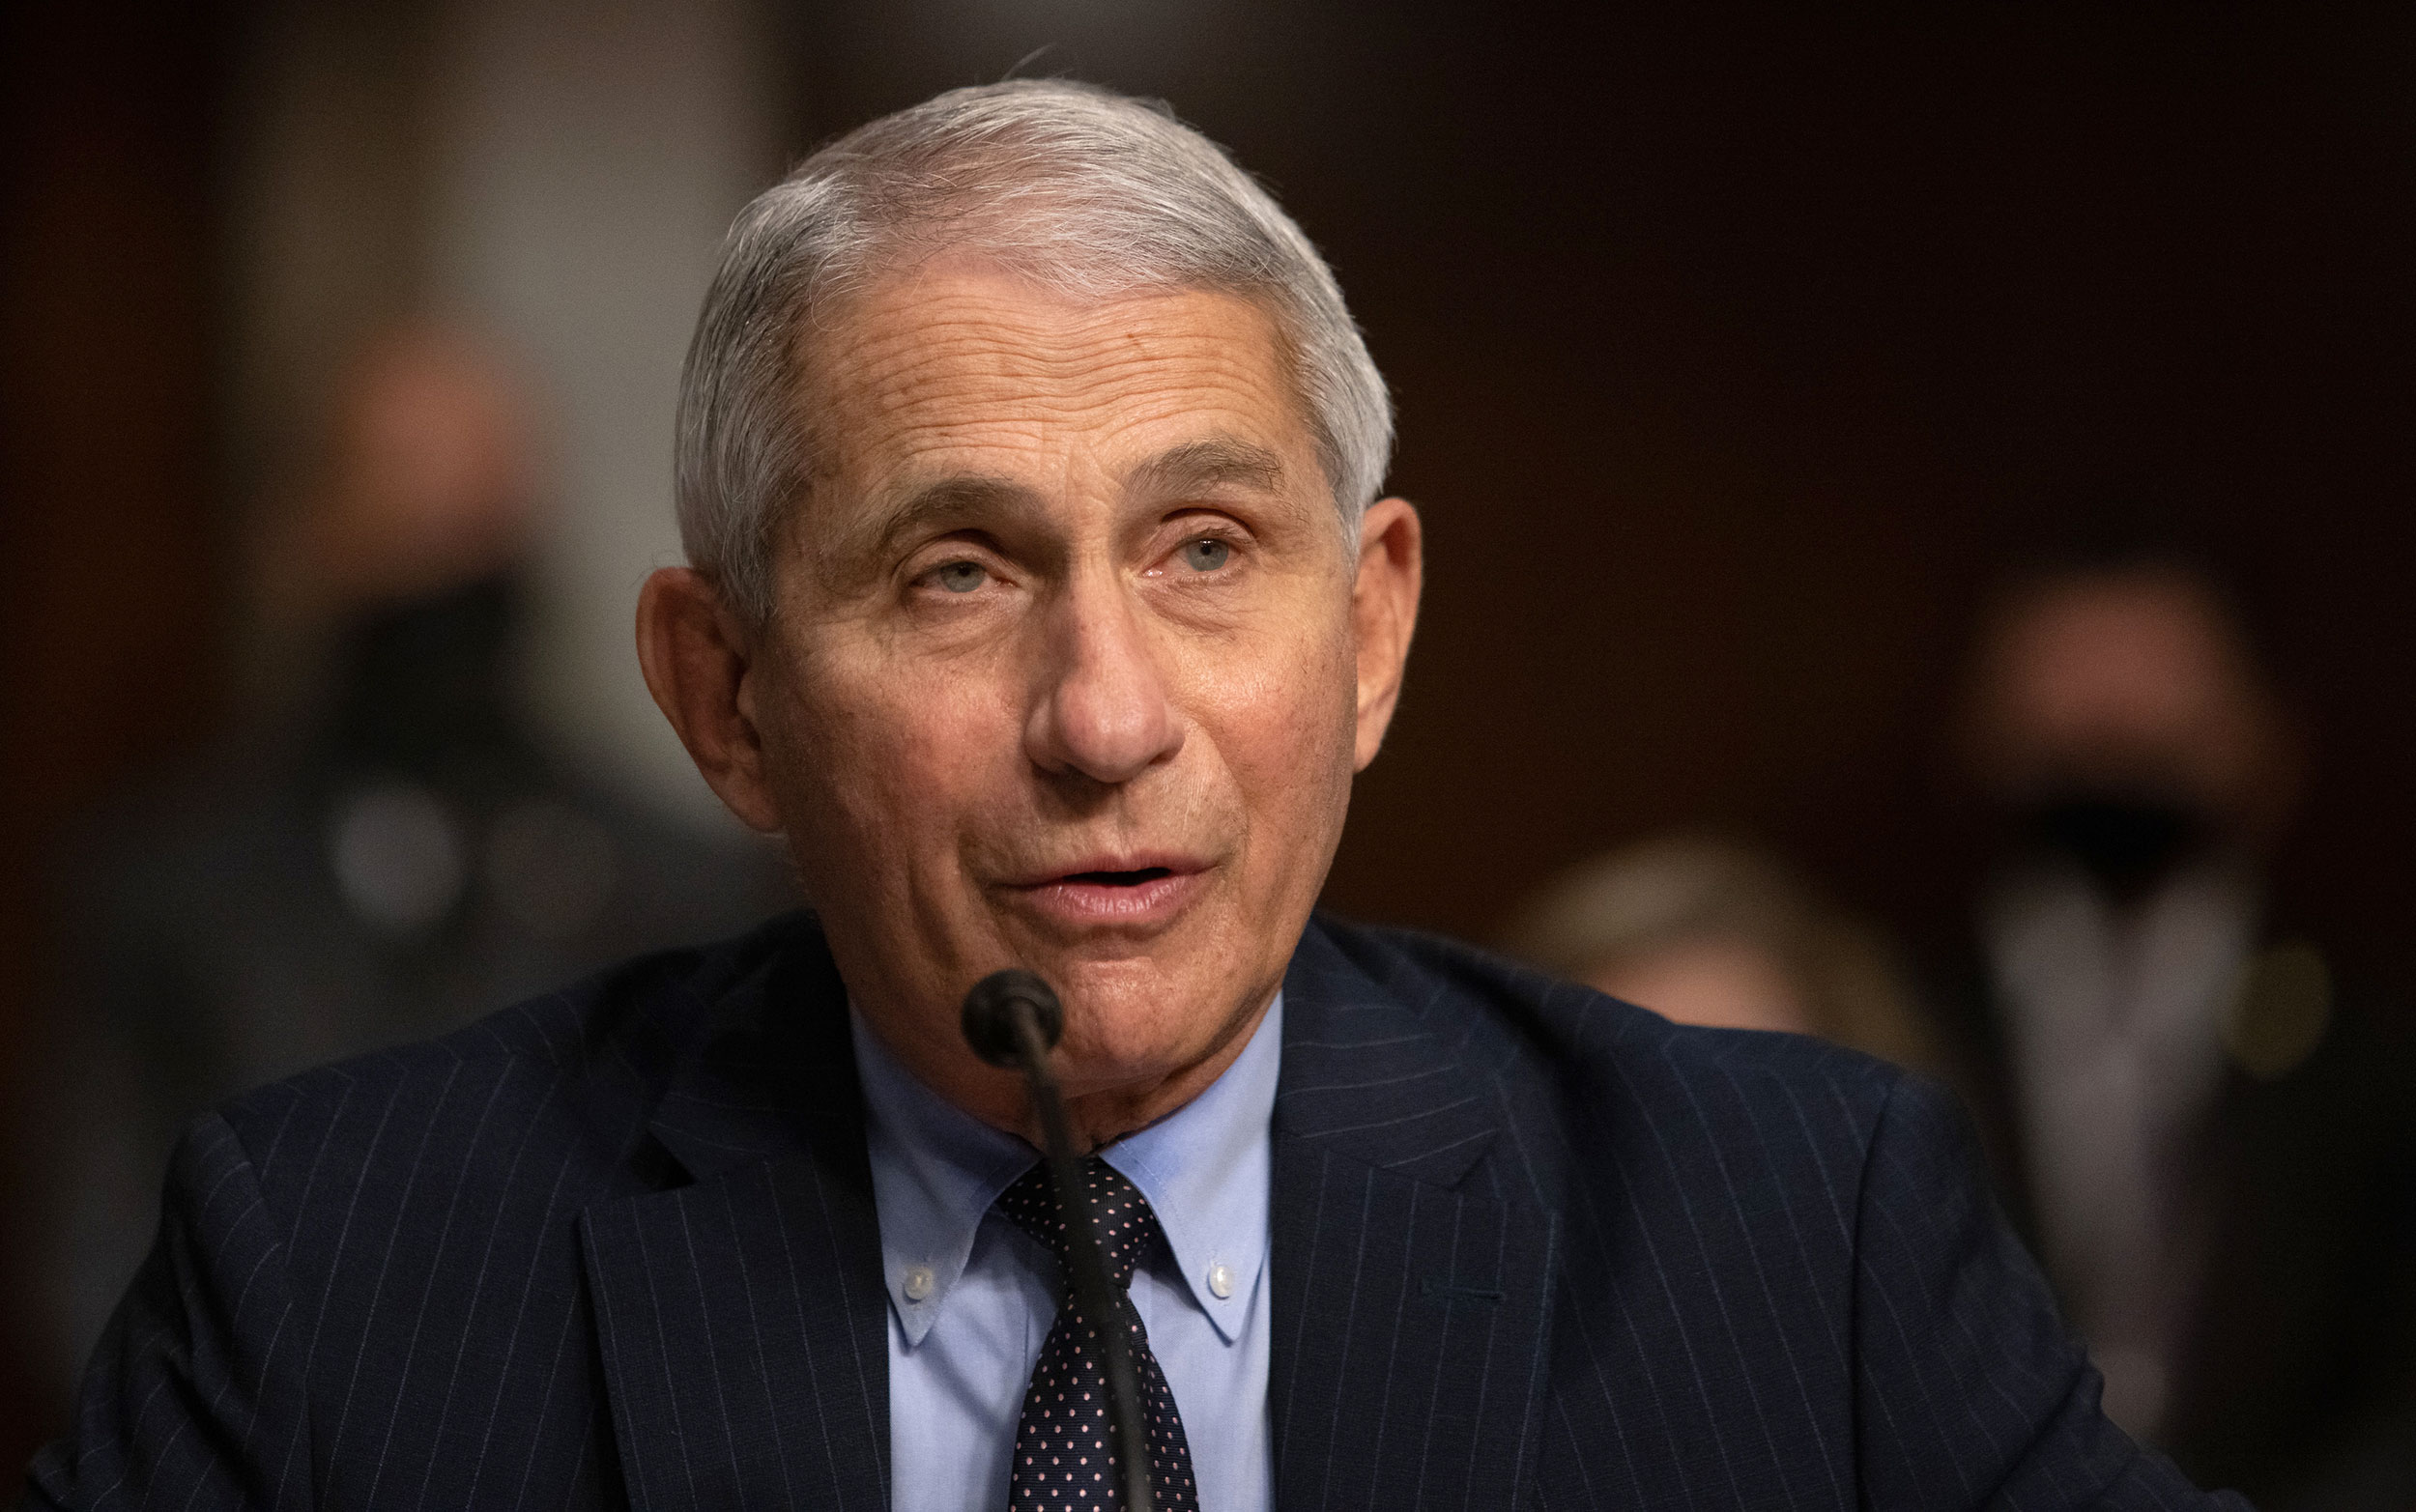 Dr. Anthony Fauci testifies at a Senate Health, Education, and Labor and Pensions Committee on Capitol Hill, on September 23 in Washington, DC.